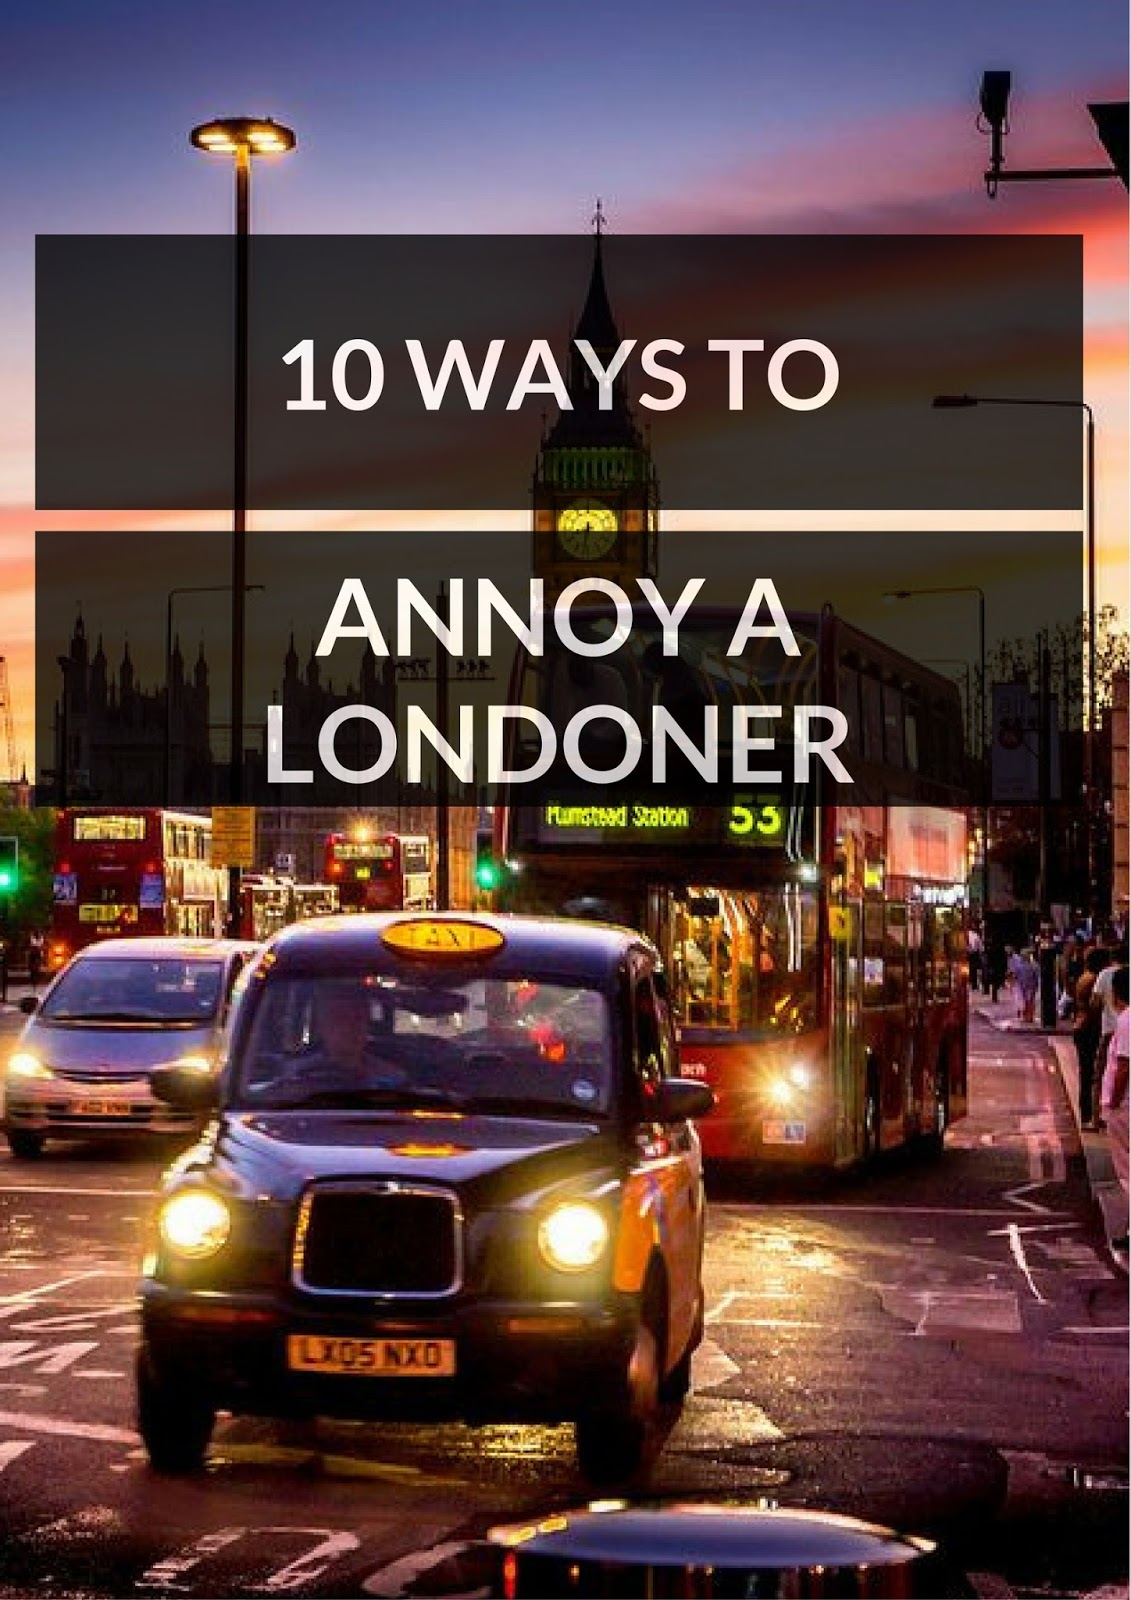 10 Ways To Annoy A Londoner